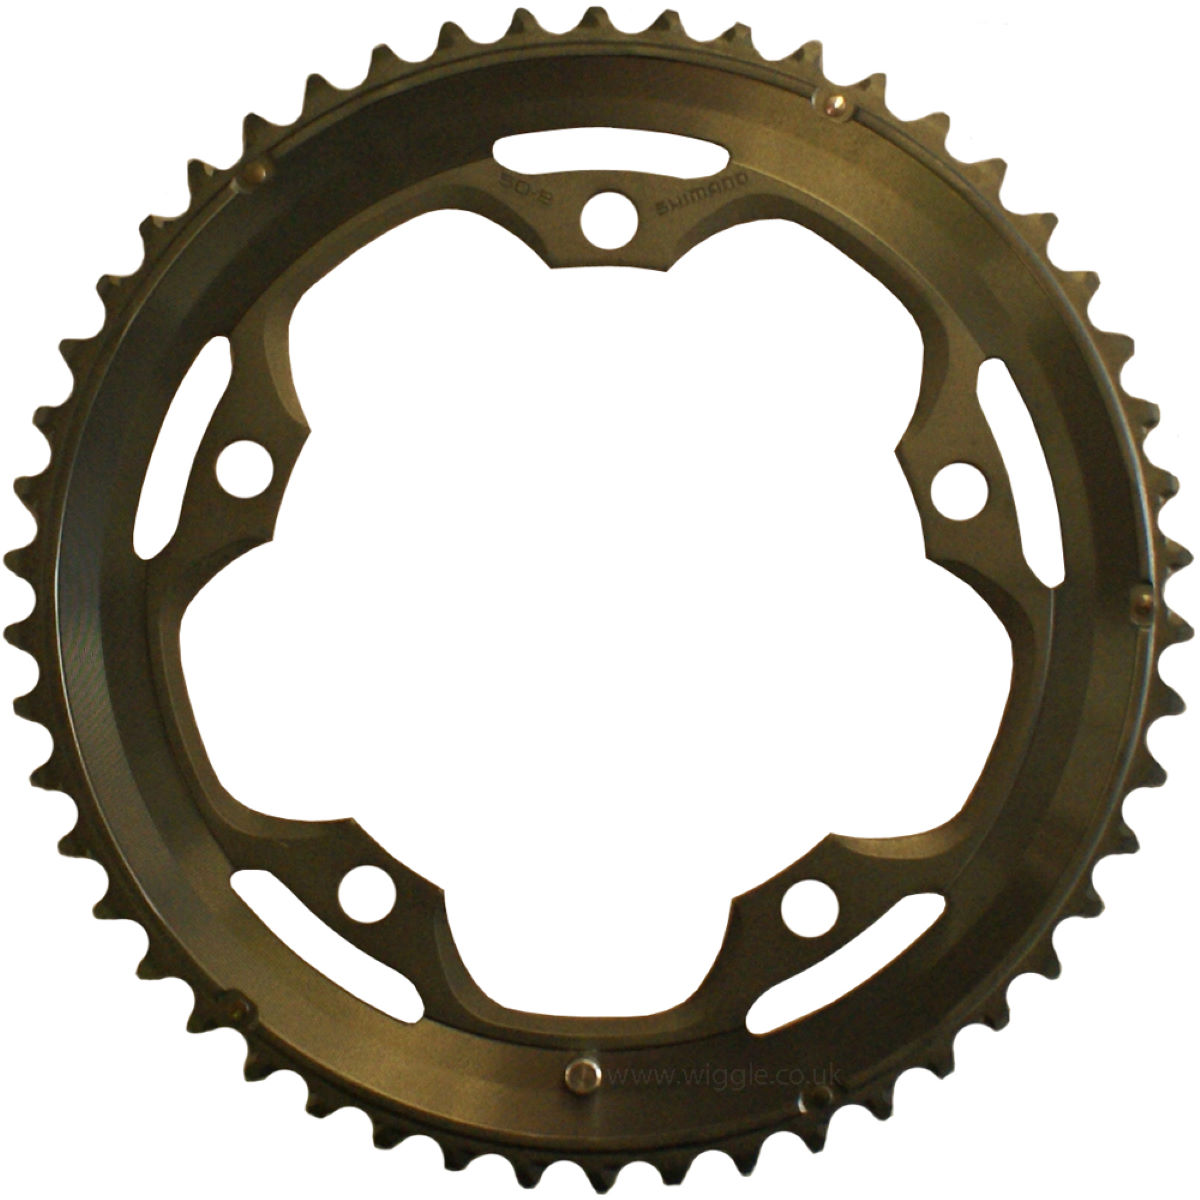 Wiggle Shimano 130 Pcd 105 5600 10 Speed Outer Chainring Internal Is The Available In Black